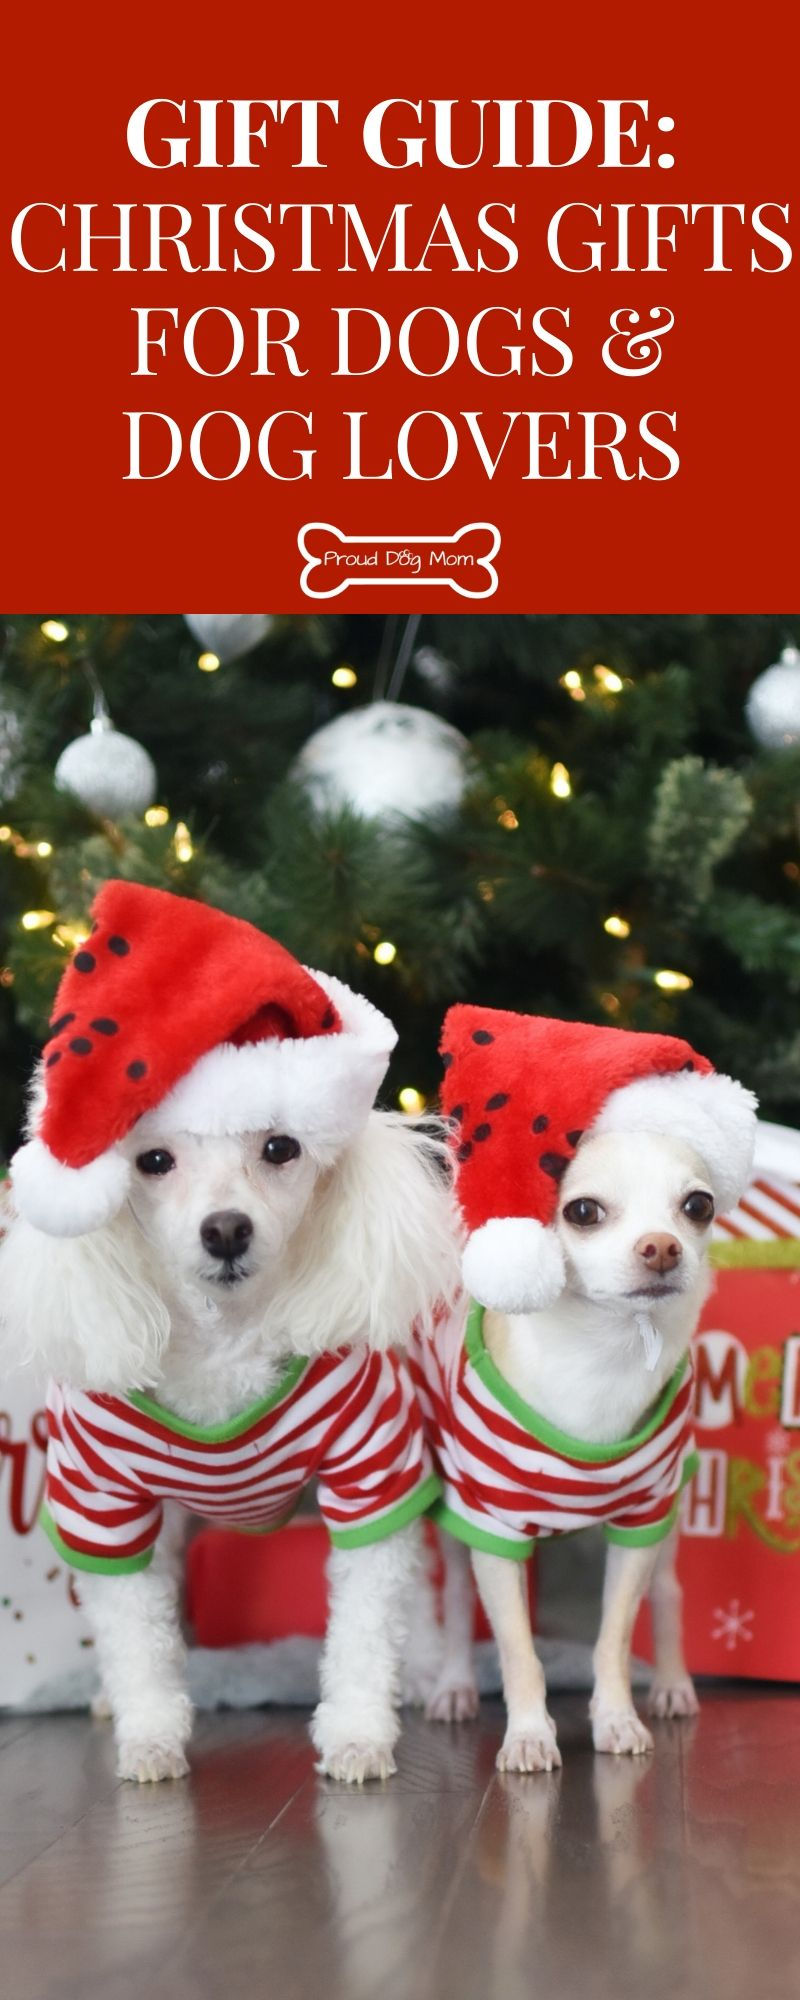 Gift Guide: Christmas Gifts For Dogs & Dog Lovers